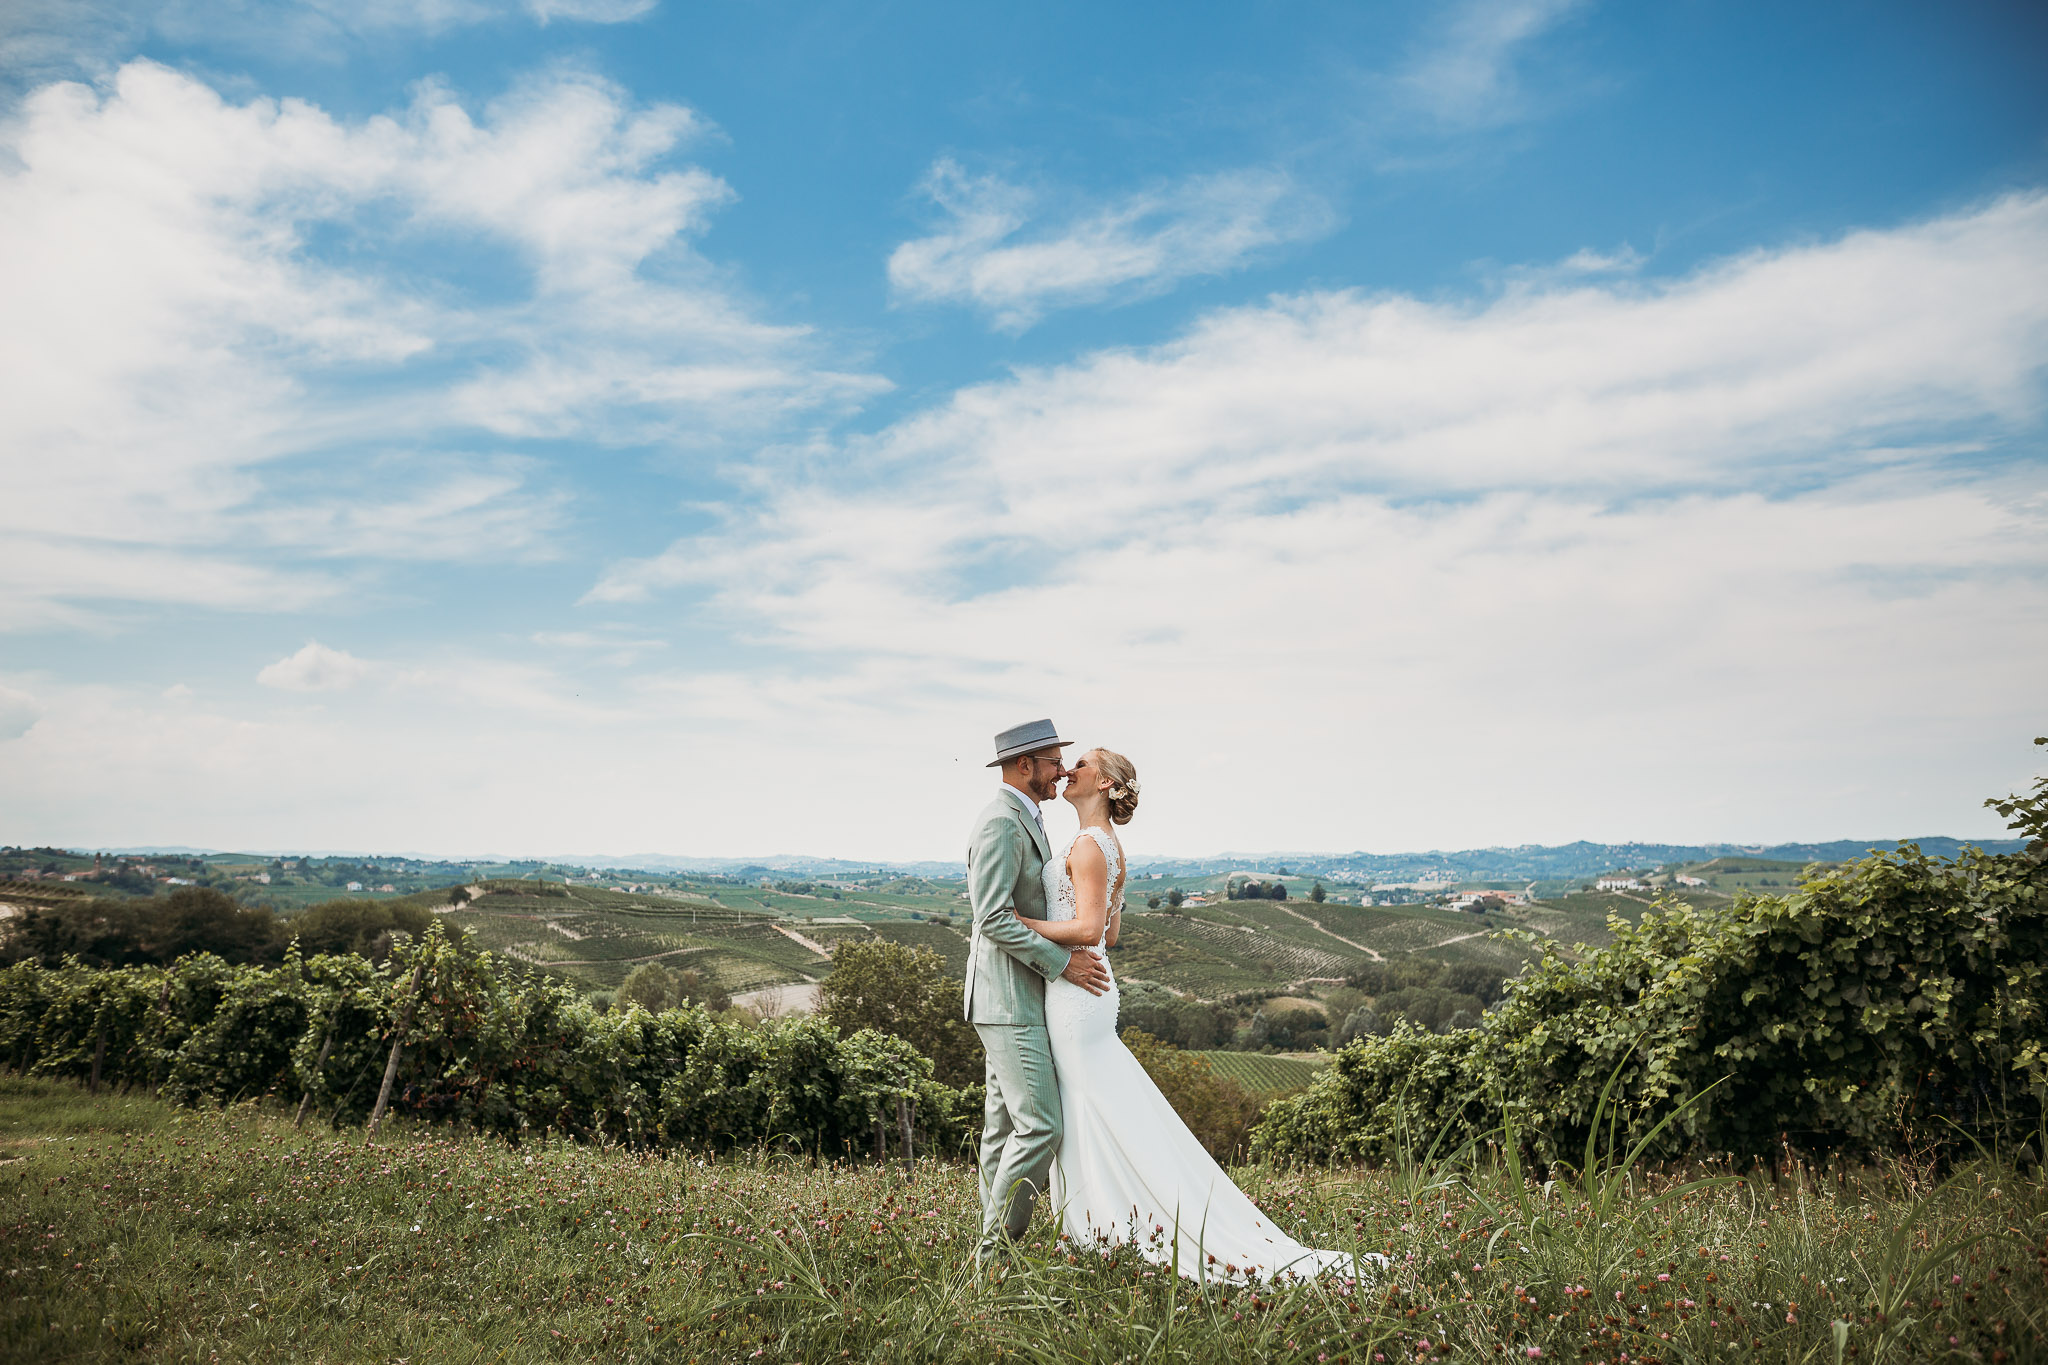 Couple getting married in Piedmont, Italy